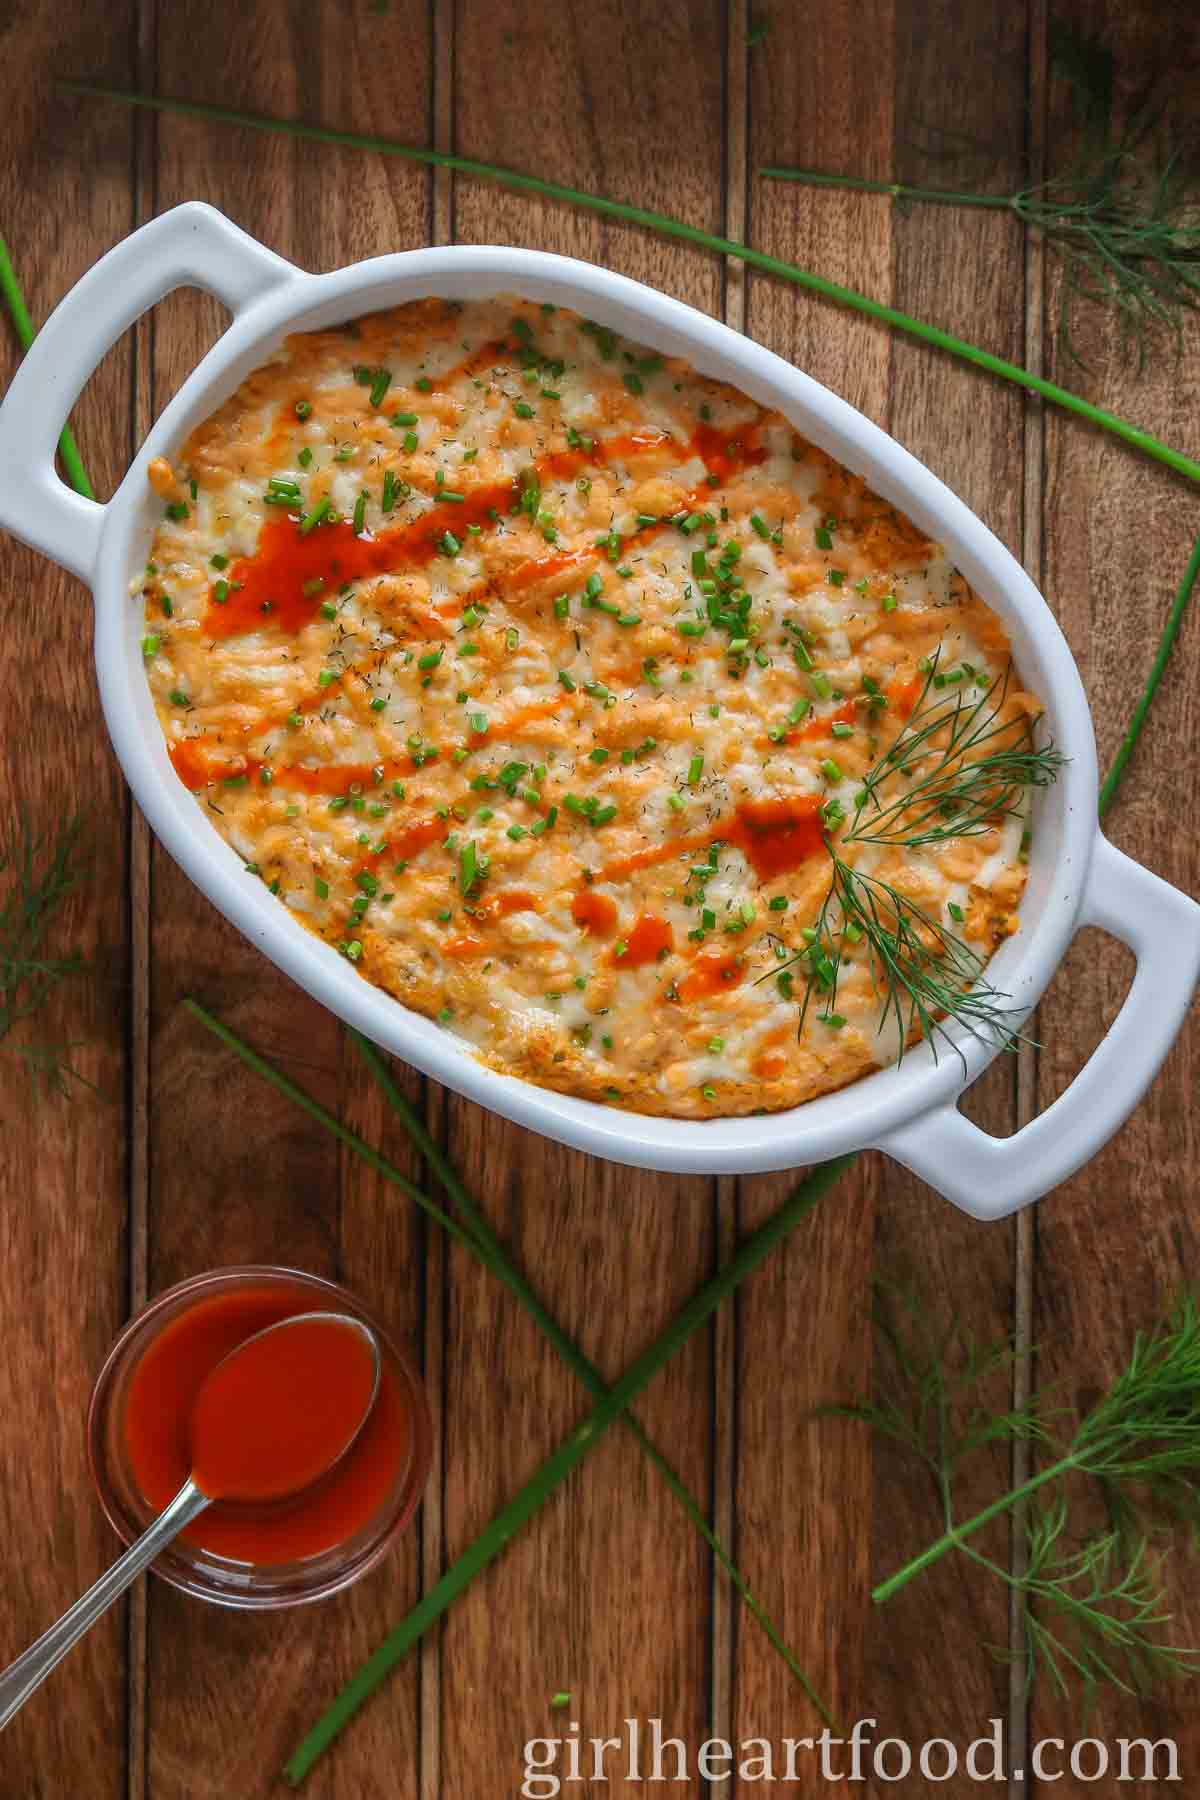 White oval dish of cheesy buffalo dip alongside a dish of hot sauce with a spoon in it.